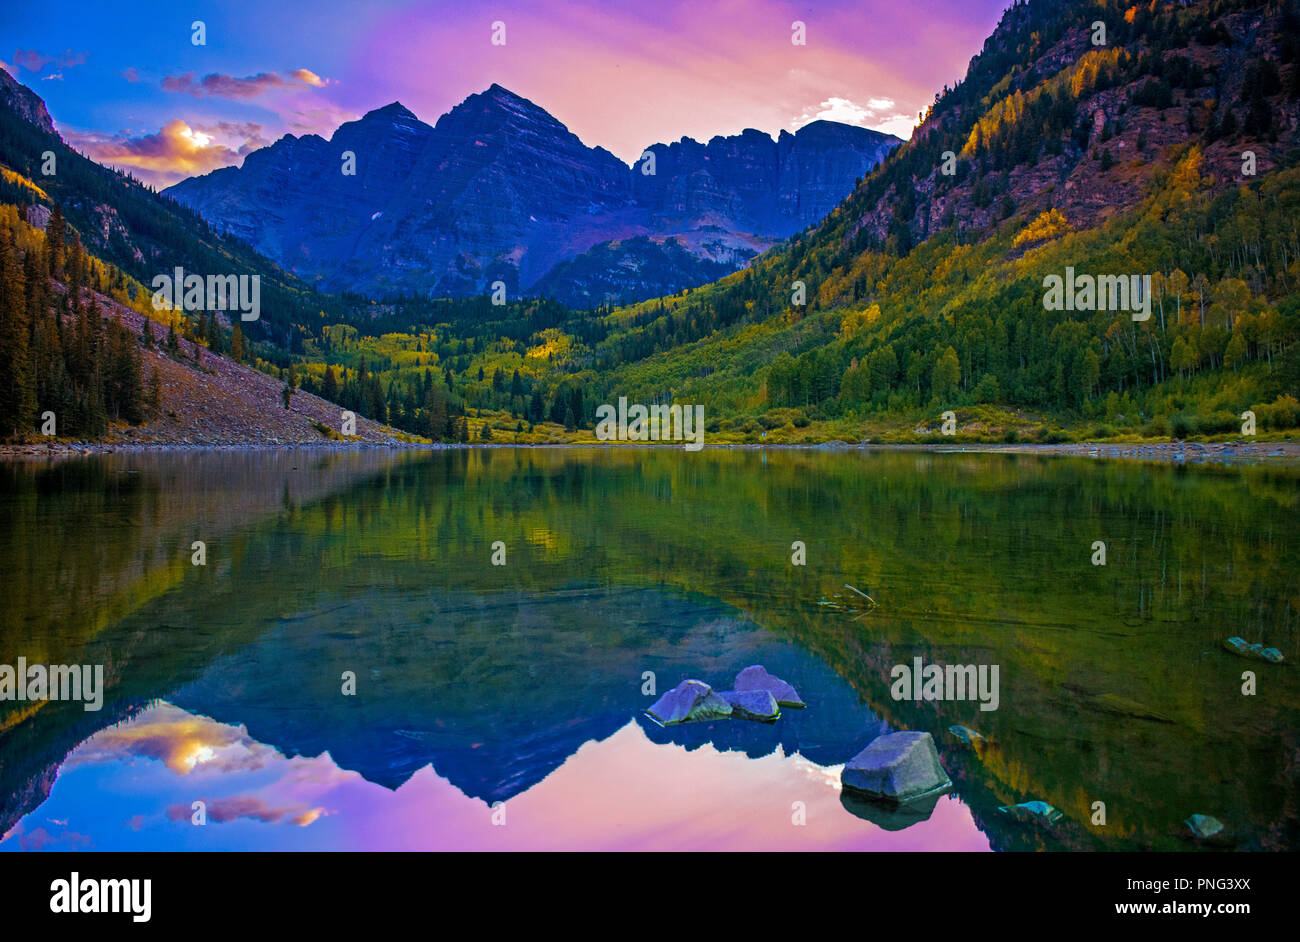 Epic mountain peaks during sunset and colorful skies reflect in placid lake in autumn. - Stock Image